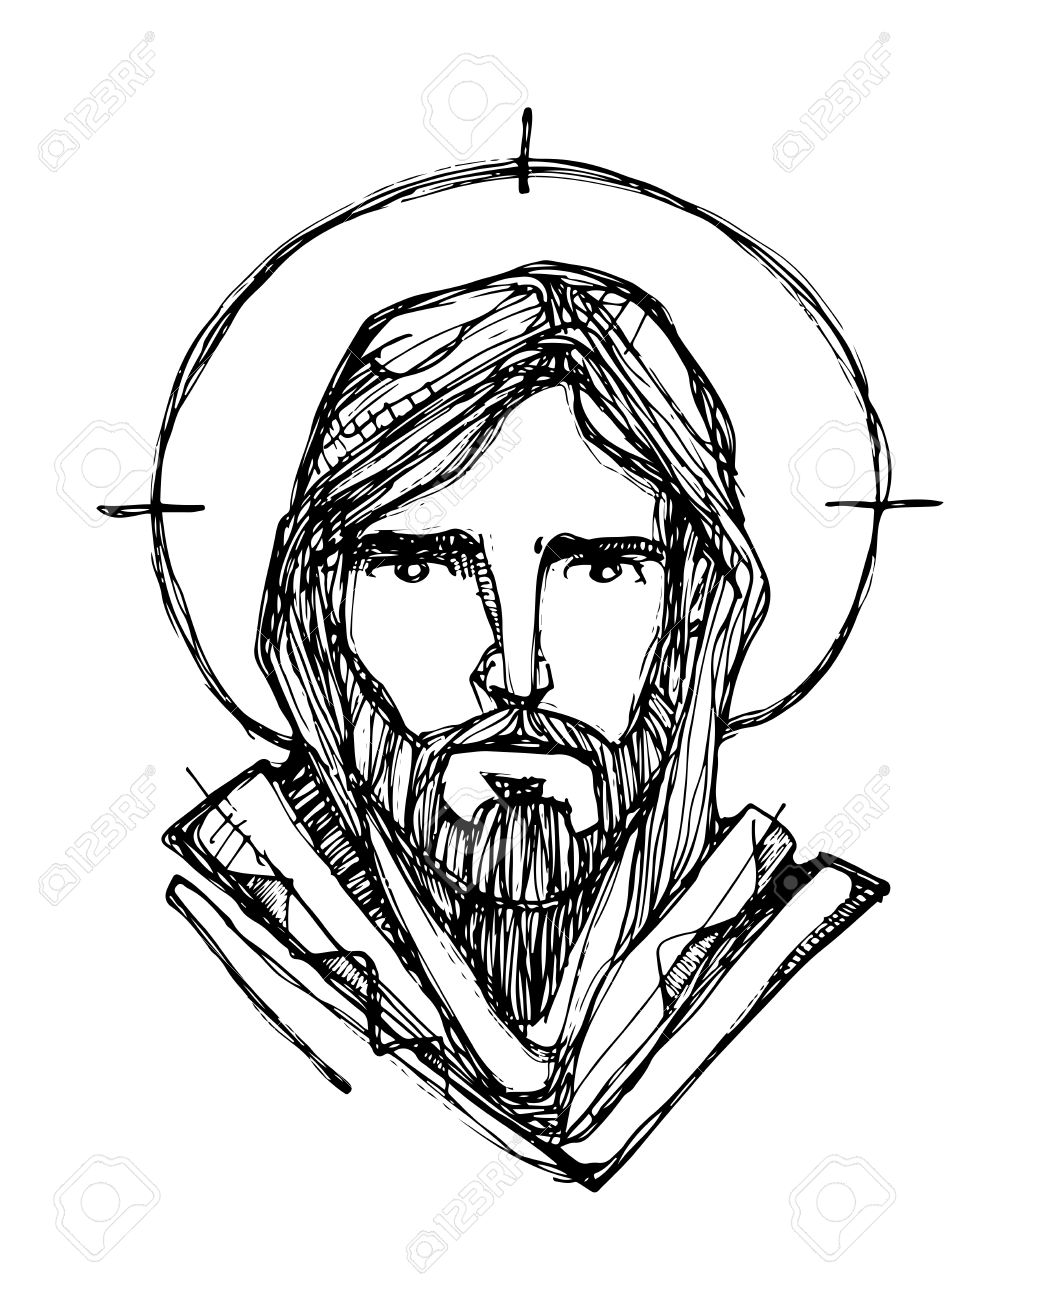 Line Drawing Of Jesus Face : Jesus drawing images at getdrawings free for